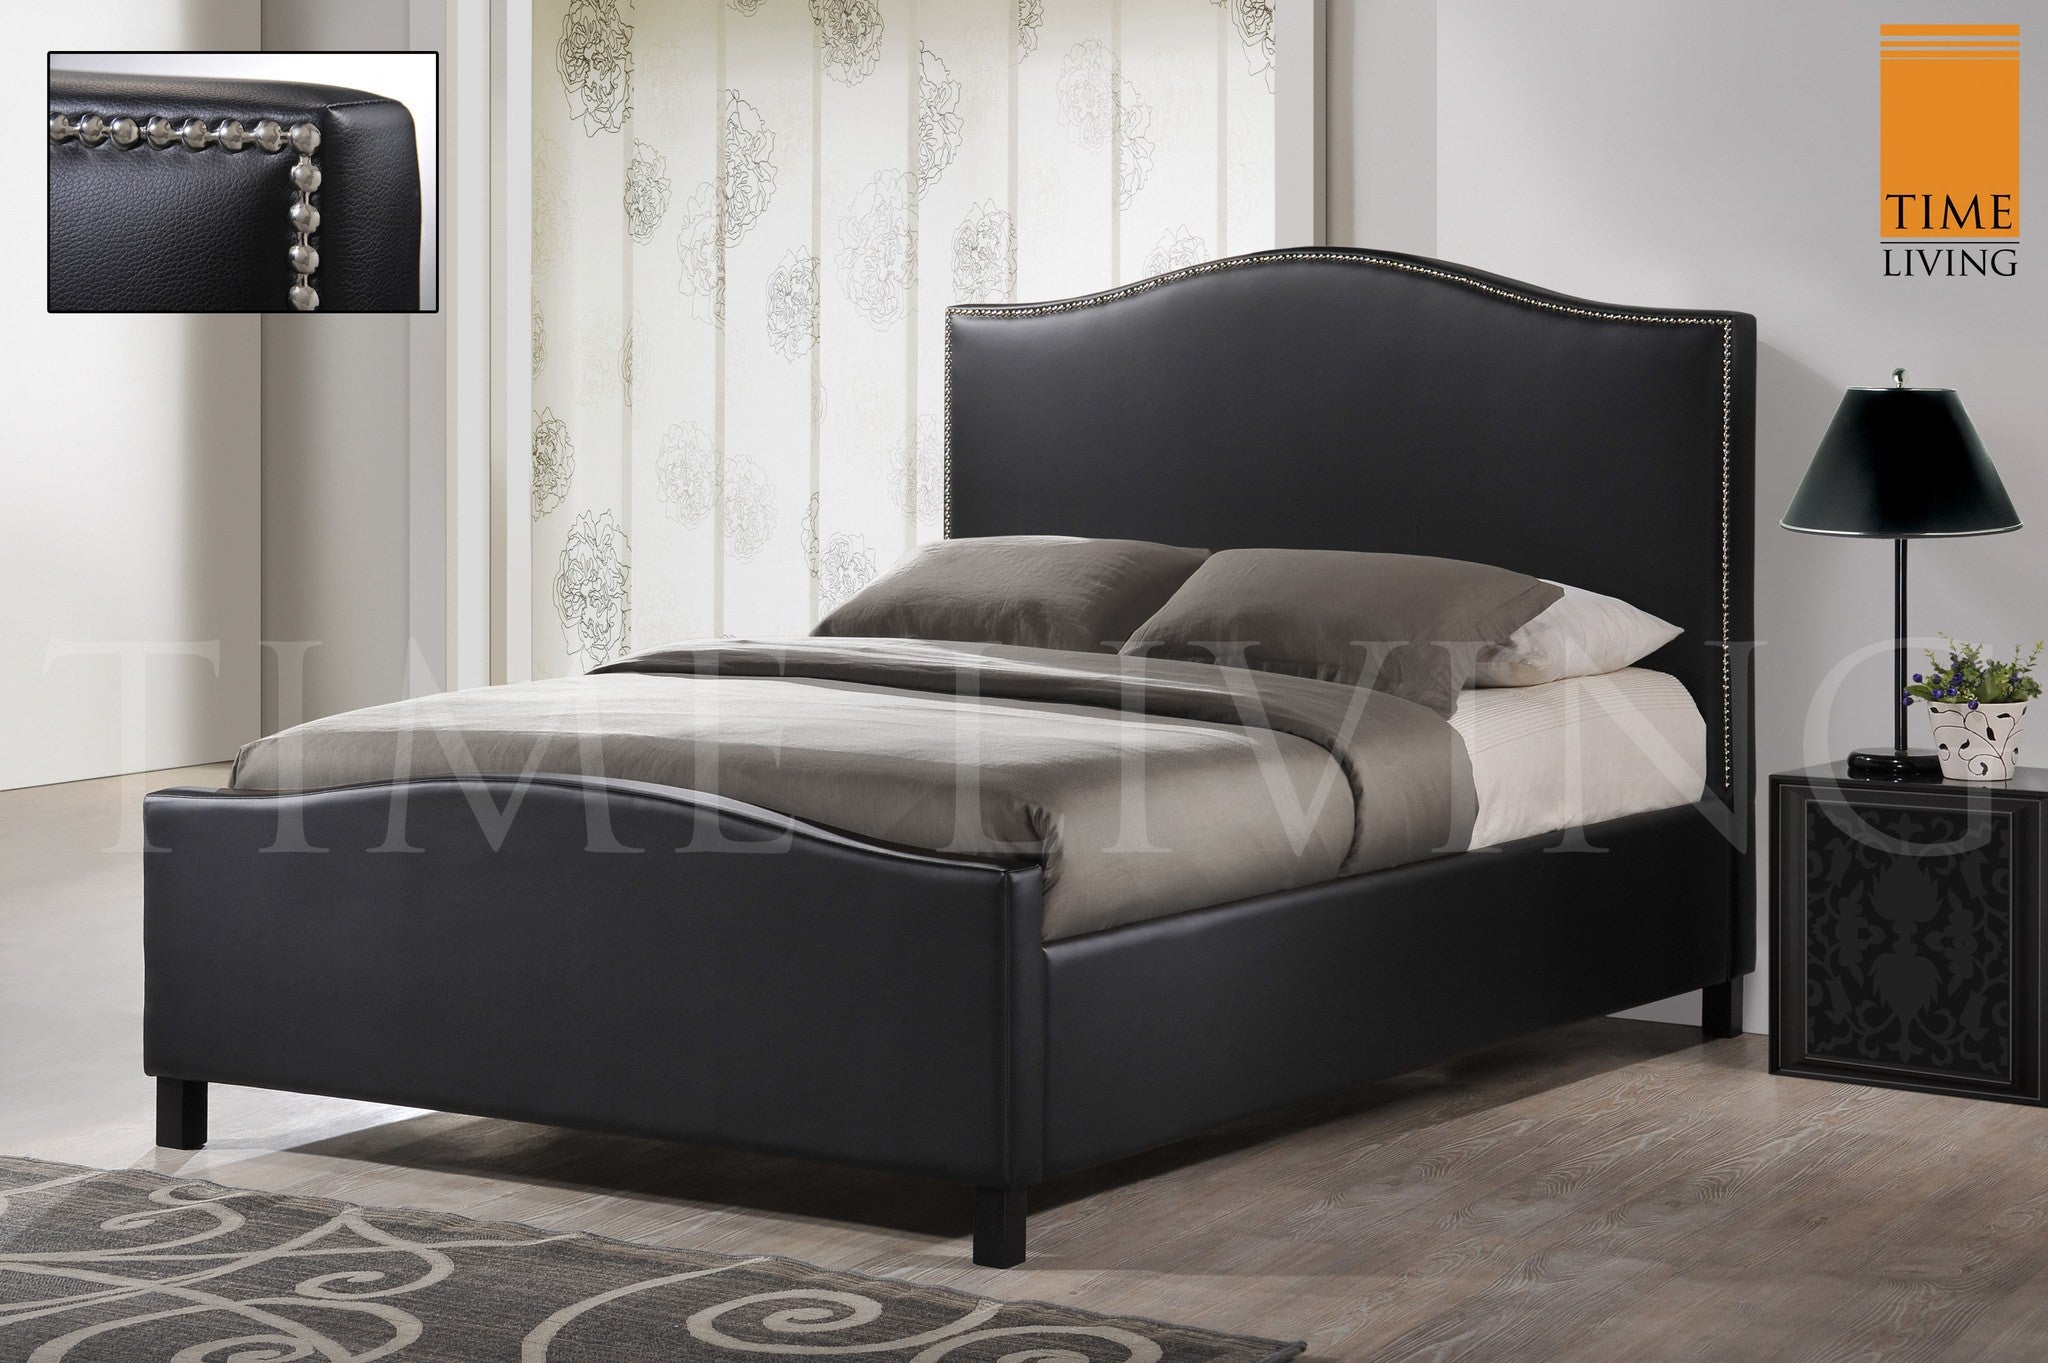 TIME LIVING Tuxford Black Faux Leather Bed Frame